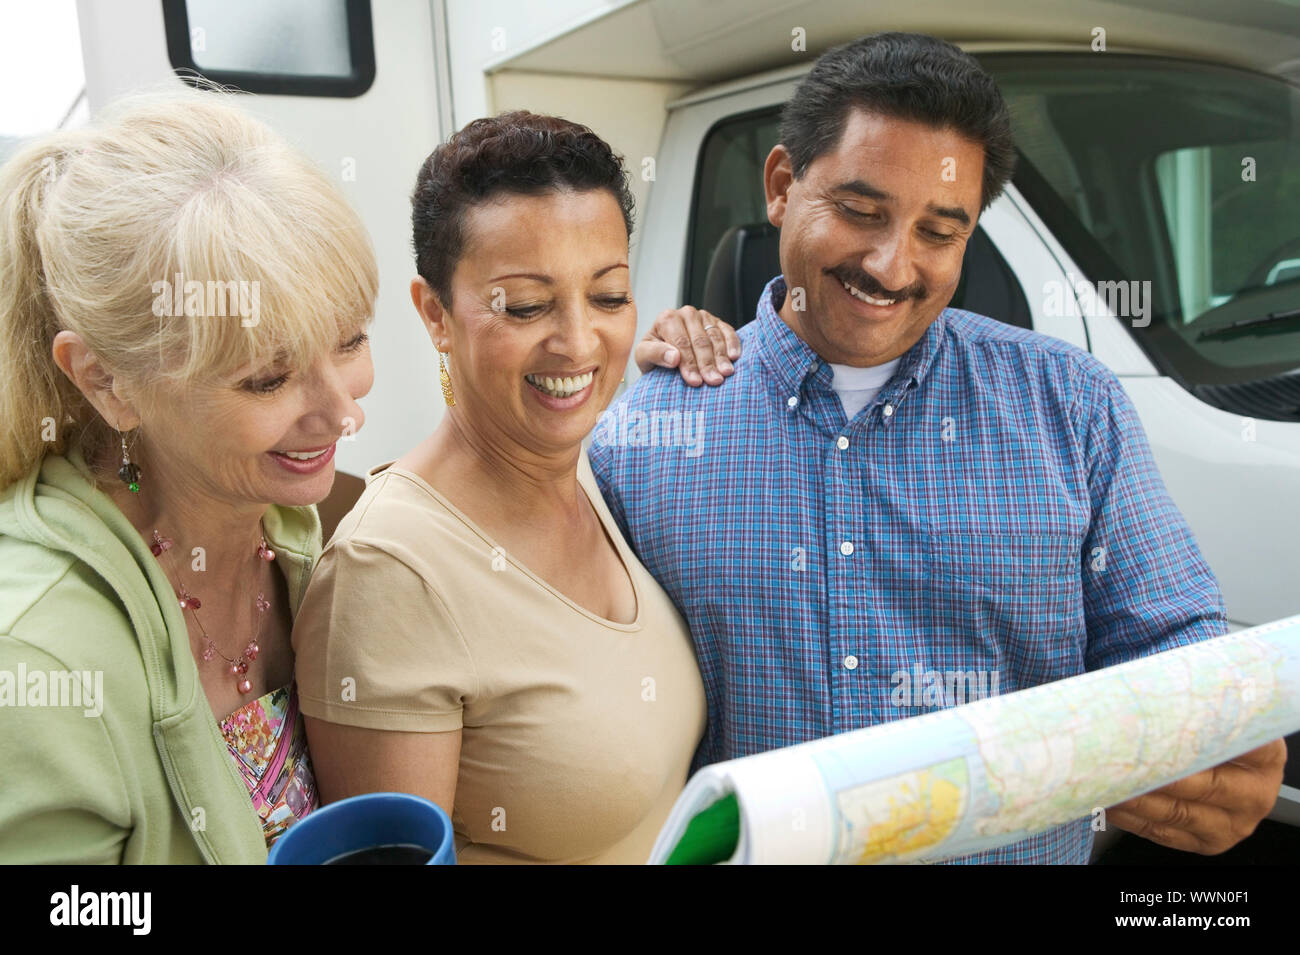 Friends Consulting Road Map During RV Trip Stock Photo